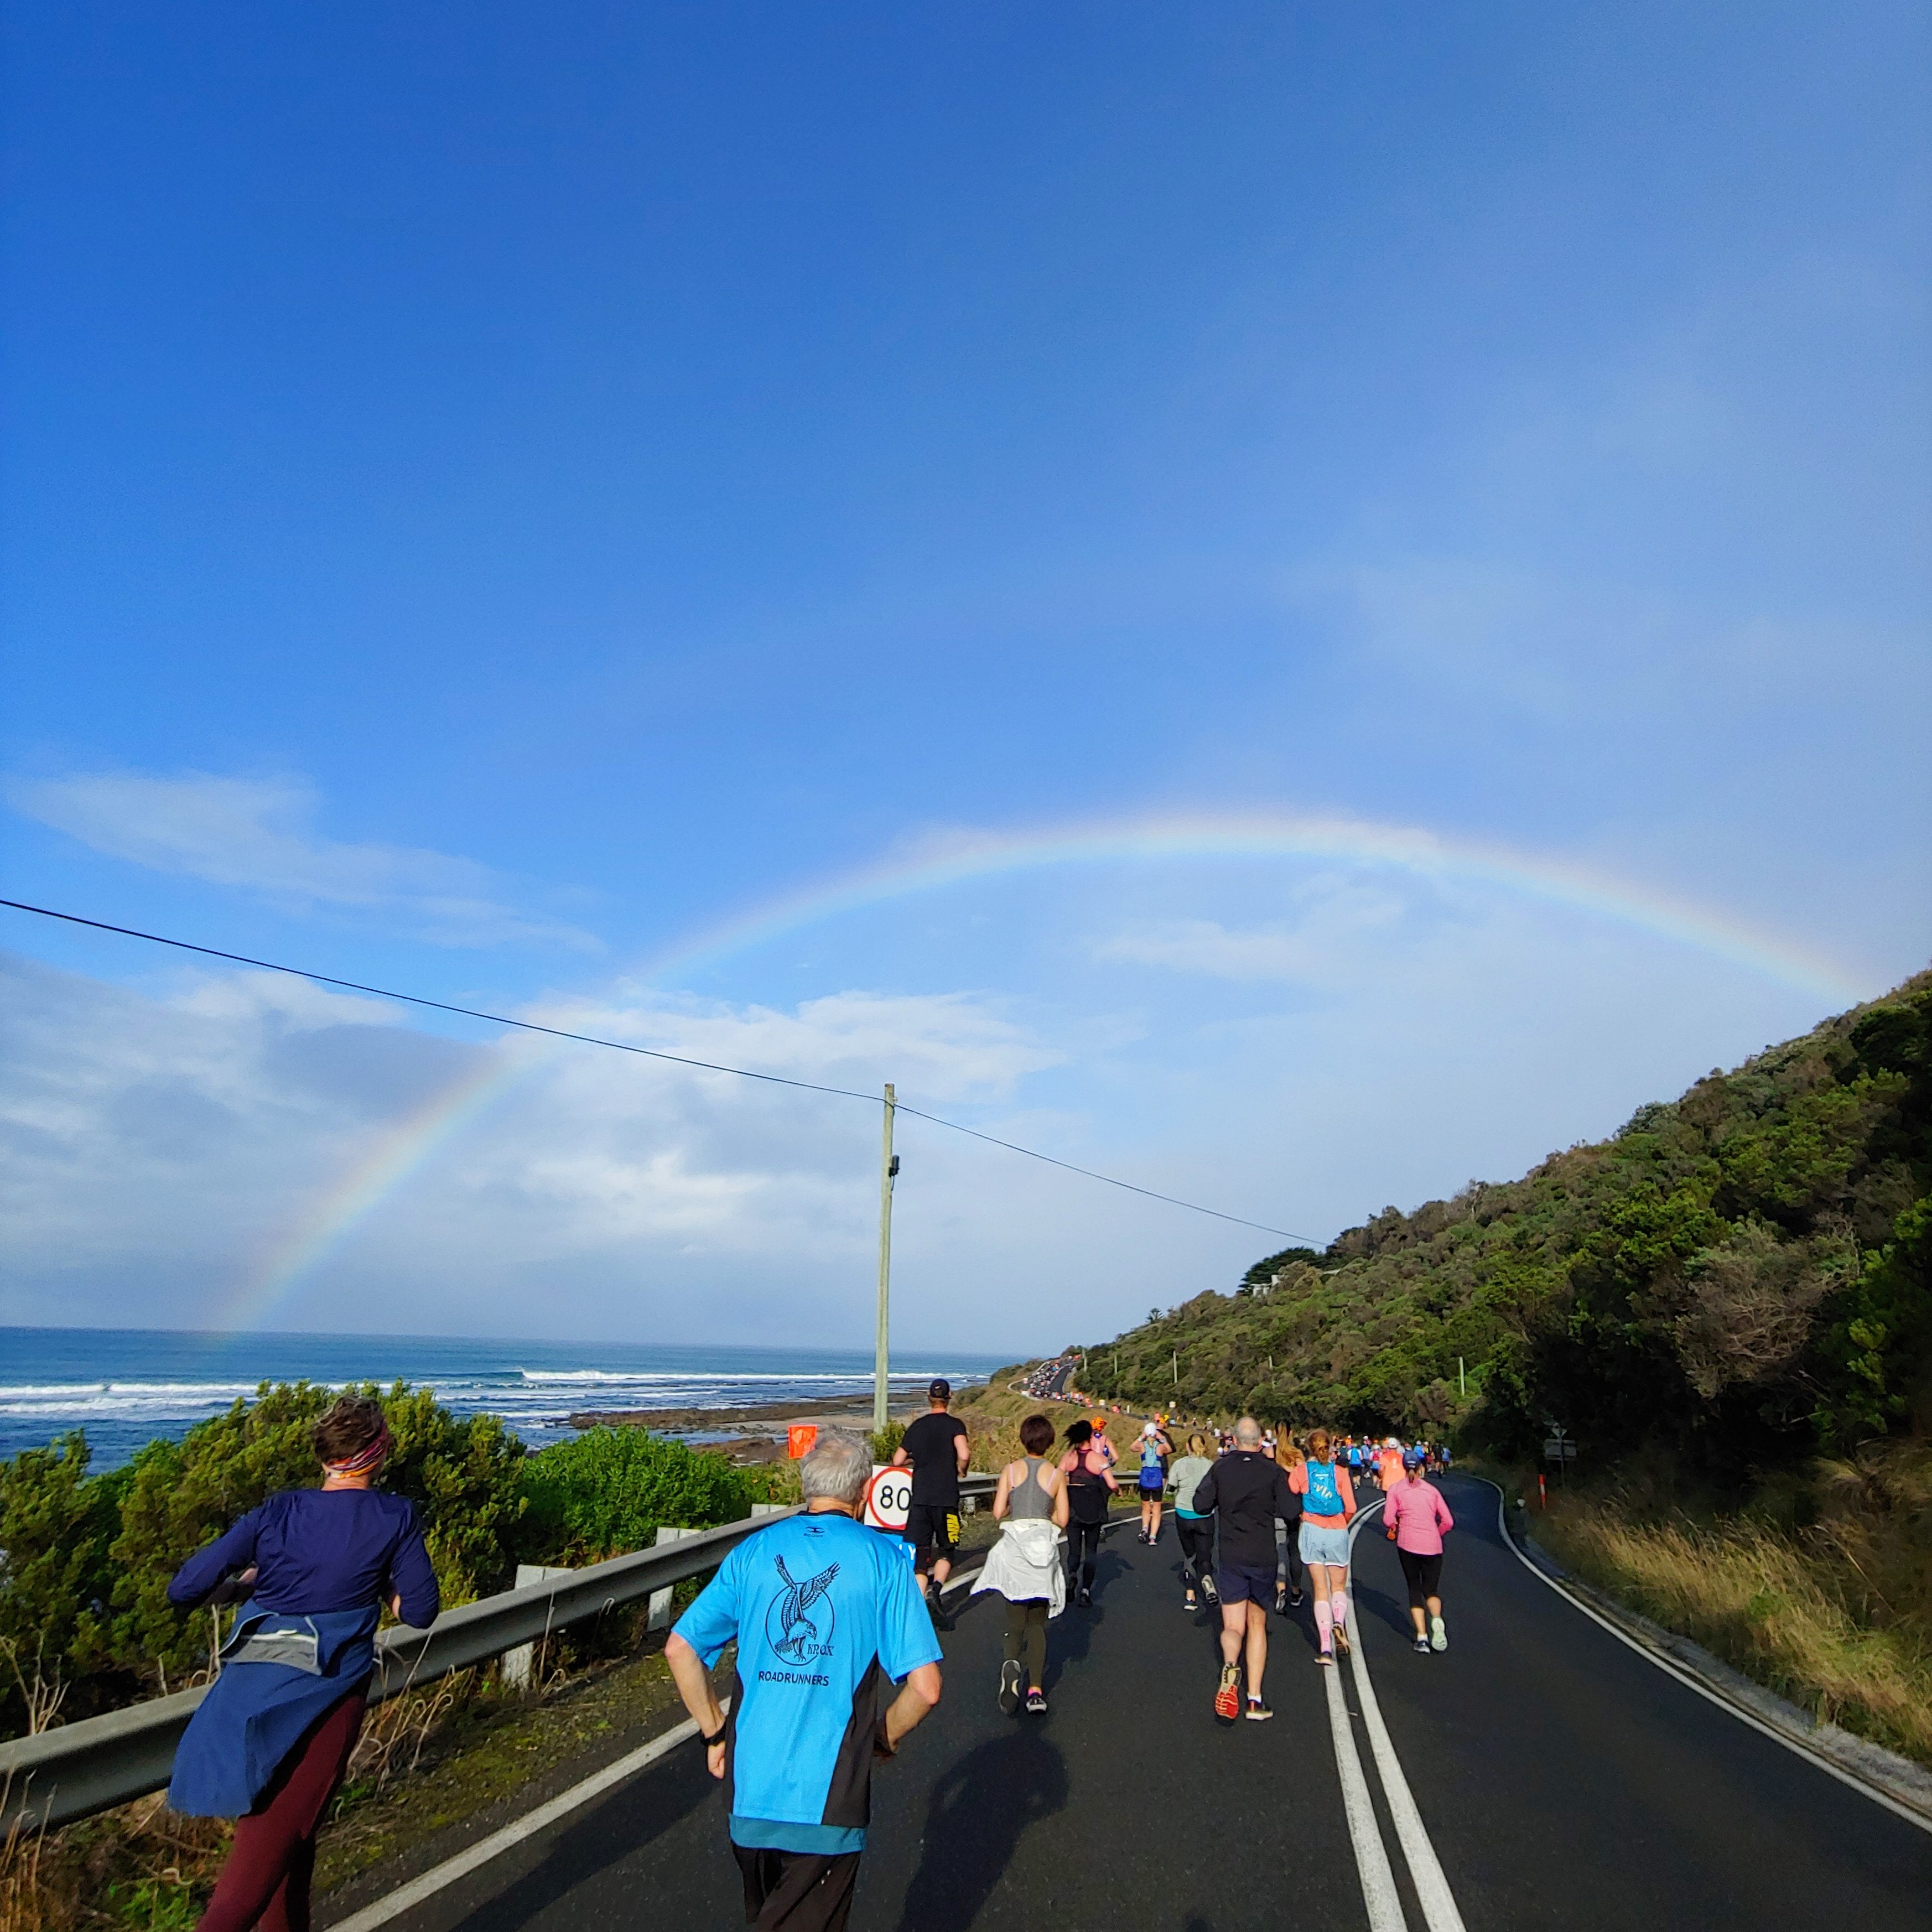 People running along a tarmac road with woods on the right and the sea on the left, and a bright rainbow in the sky overhead.